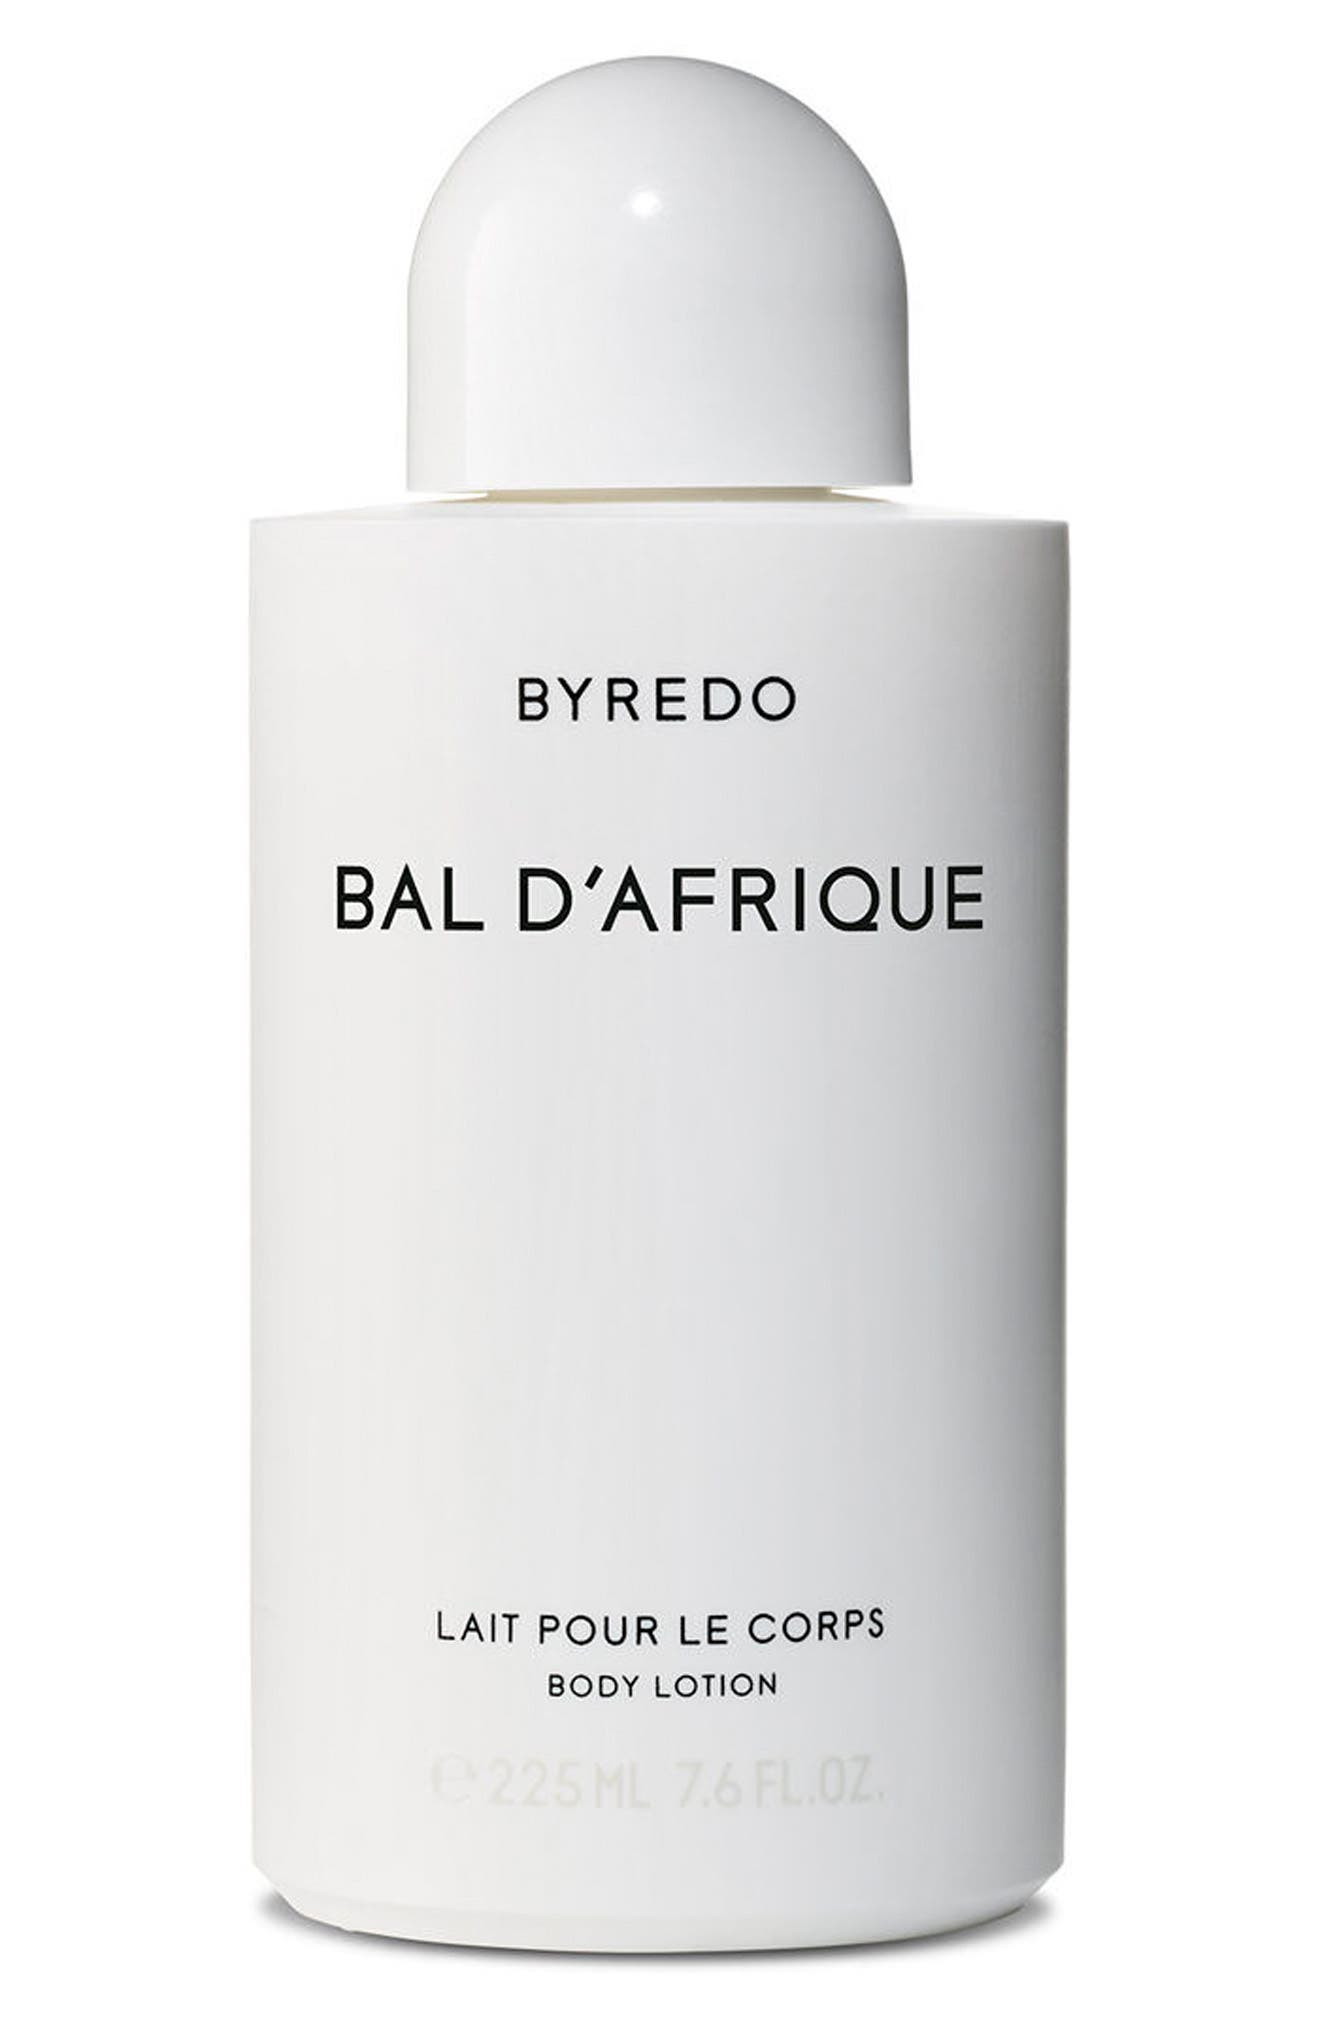 Bal d'Afrique Body Lotion,                             Main thumbnail 1, color,                             NO COLOR